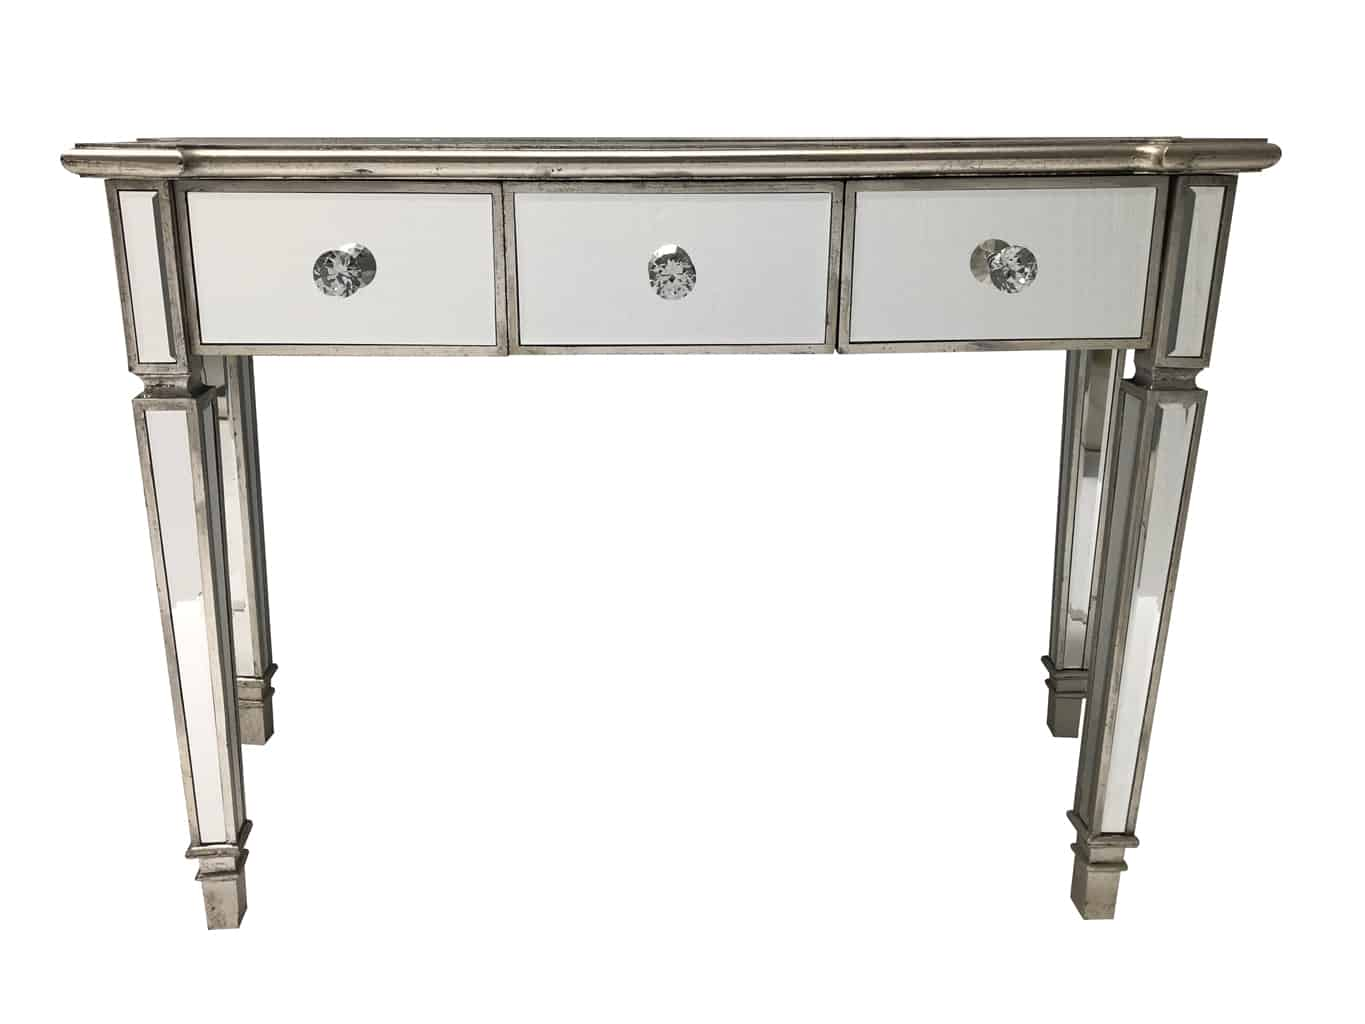 Mirrored Console Table with 3 drawers, vintage style, 4cm diameter diamante handles, wood and mirror, antiqued silve